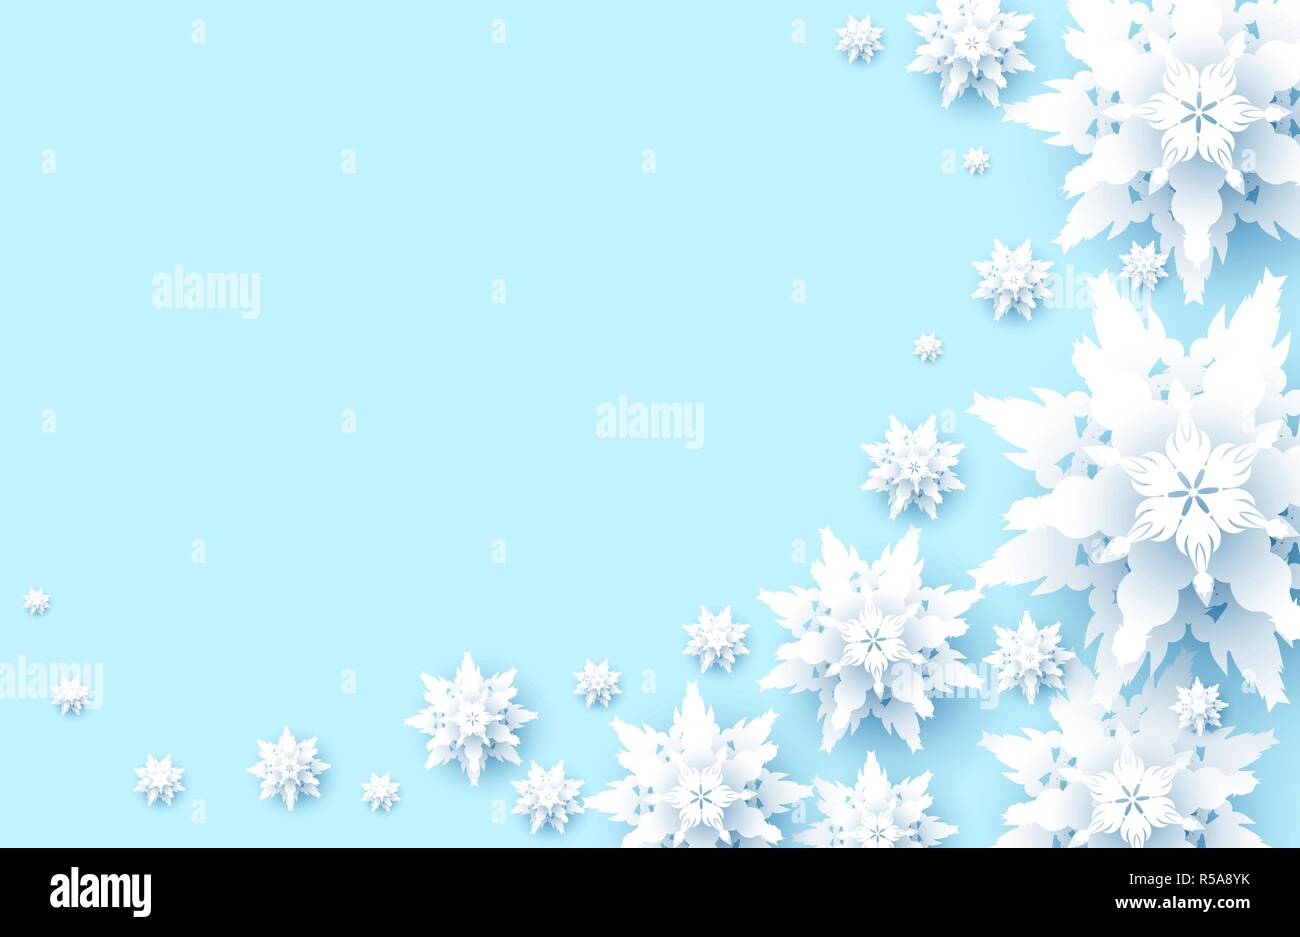 winter holiday realistic paper cut snowflakes snow christmas